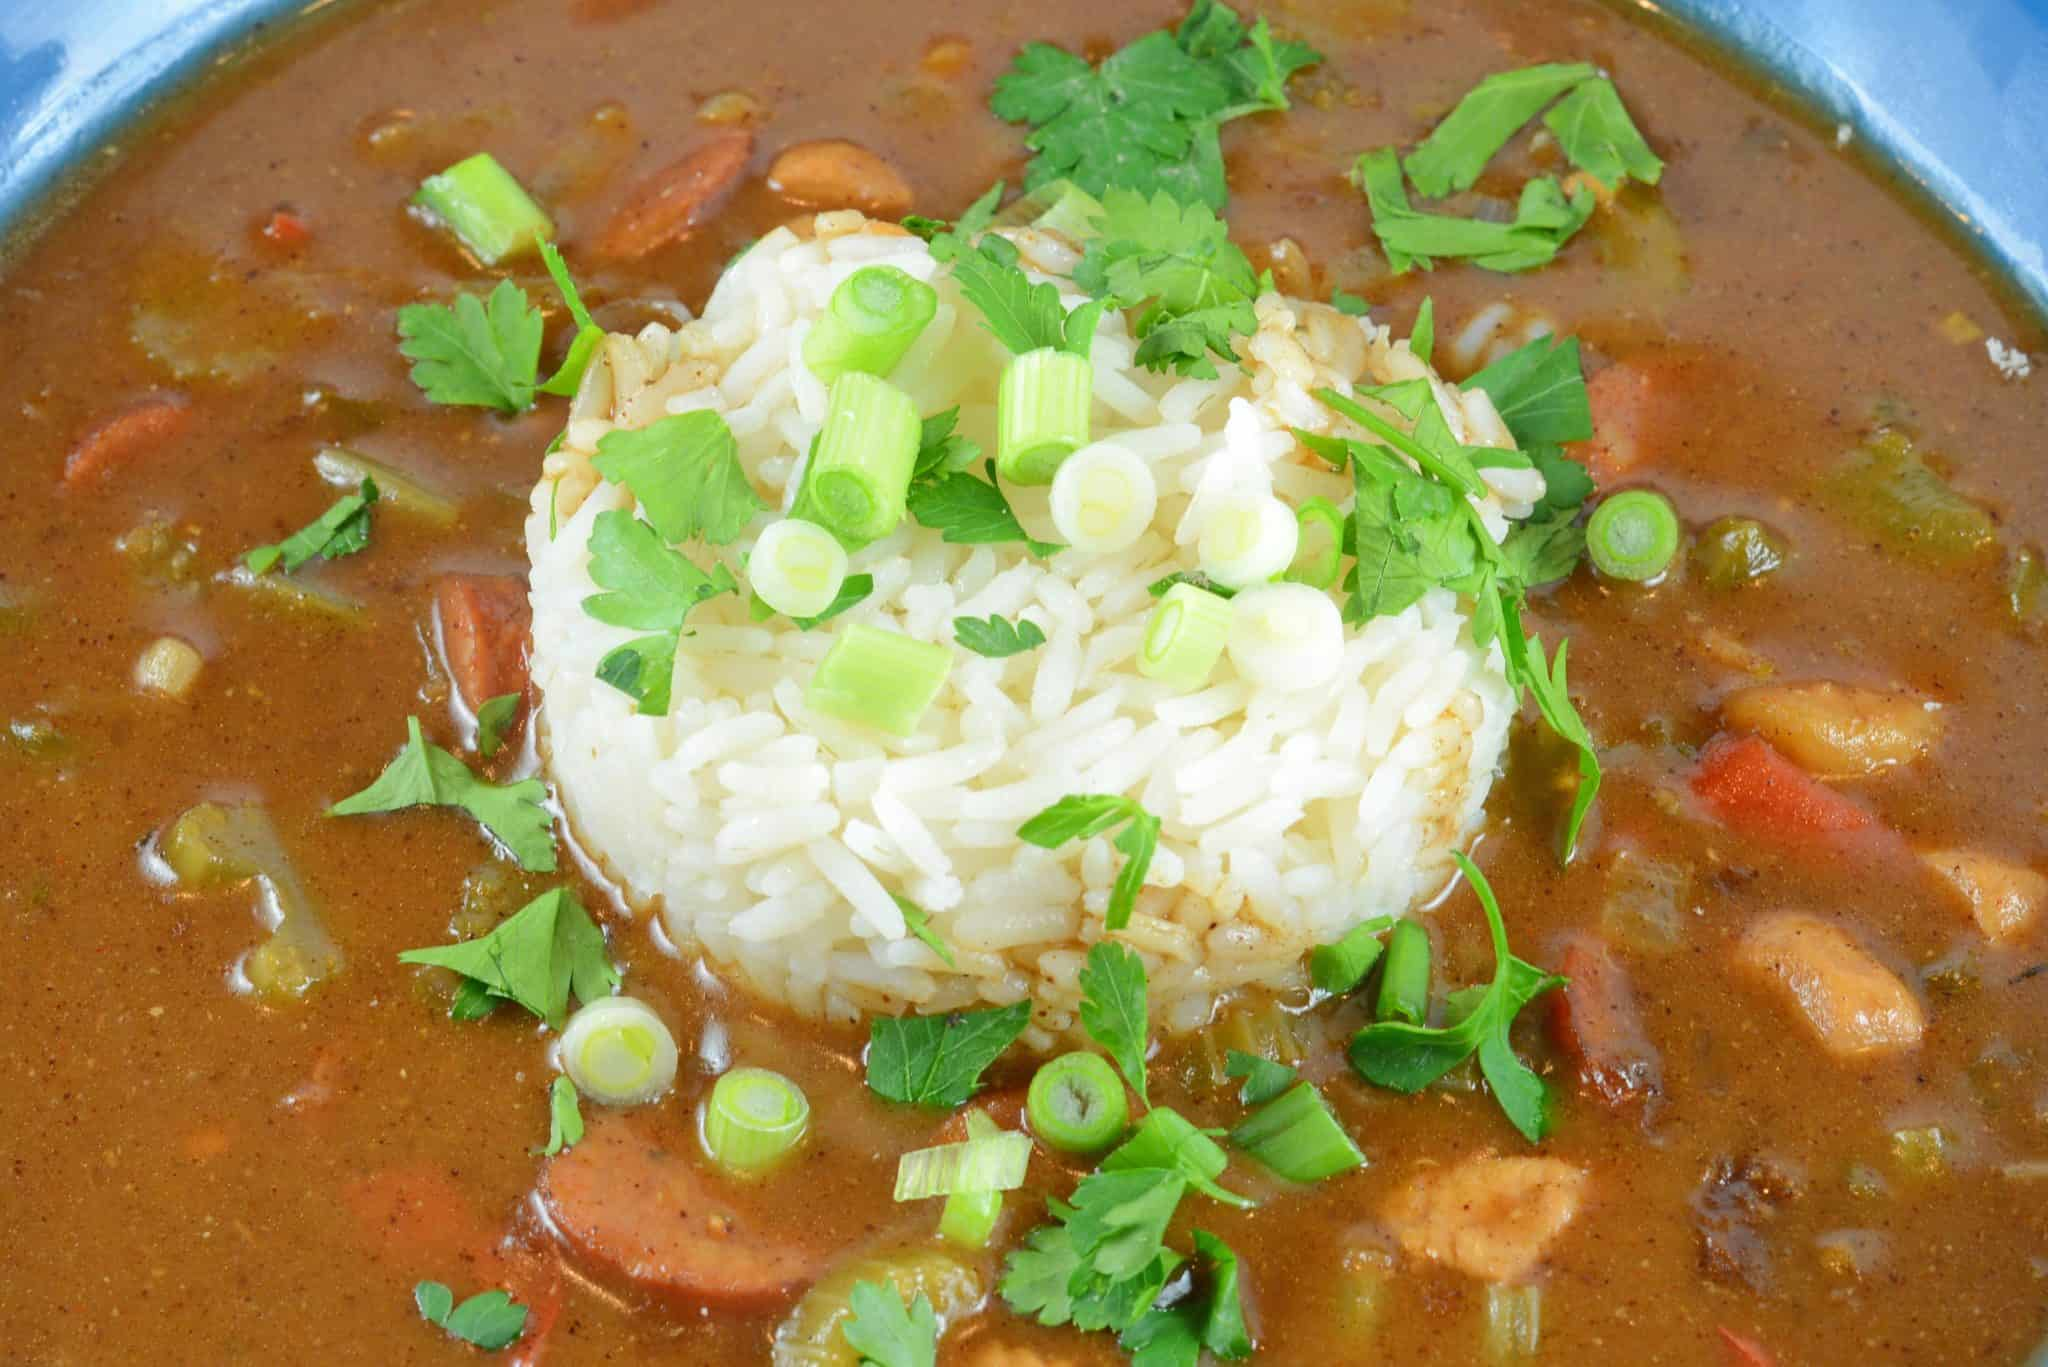 Authentic New Orleans Gumbo is a rich and hearty sauce mixed with vegetables, Andouille sausage, chicken and even seafood. Serve over rice for the perfect Creole meal.